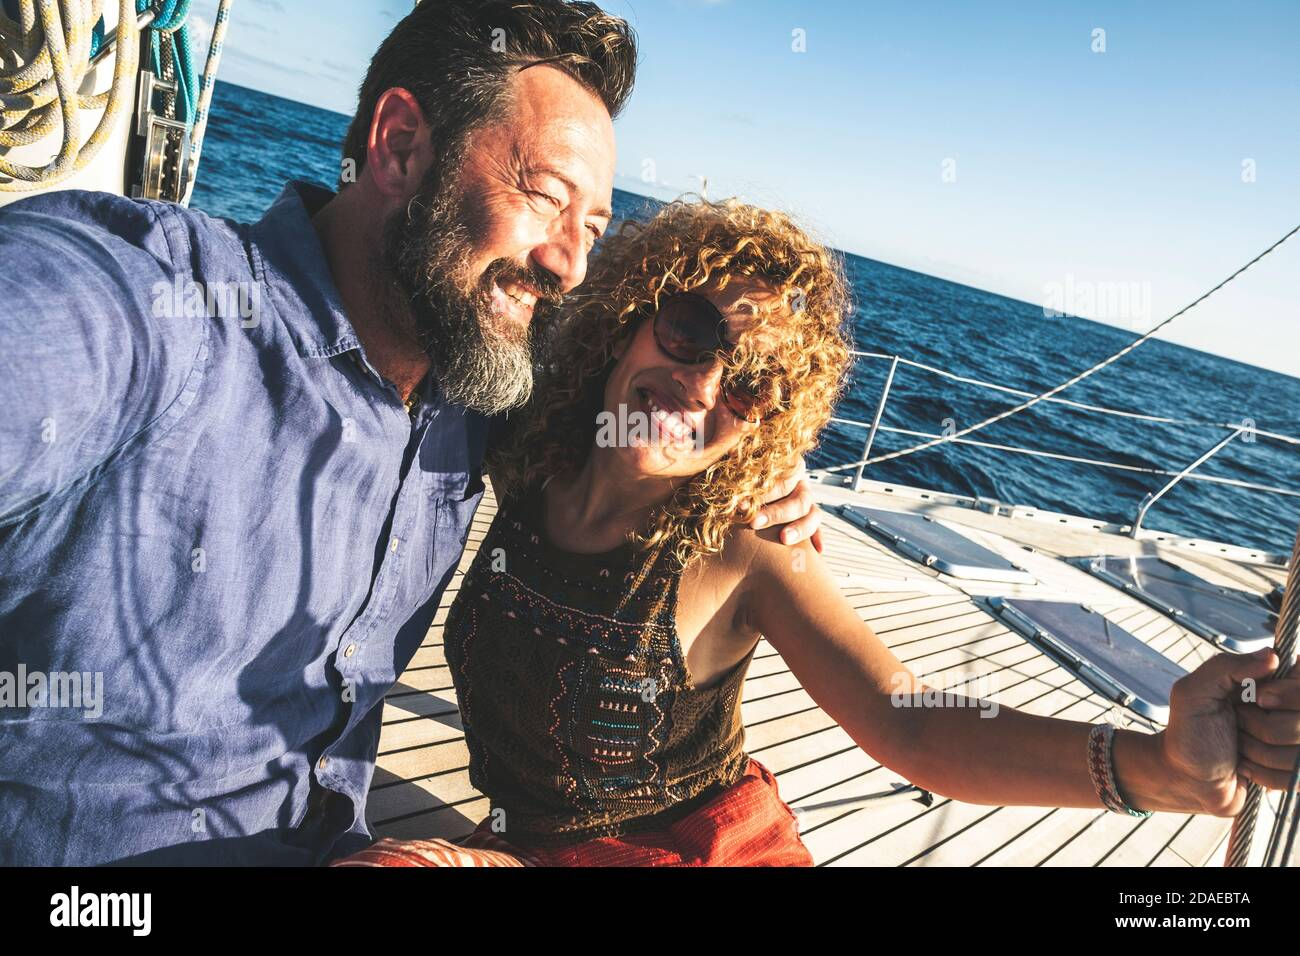 Happy adult caucasian couple together on a sailboat enjoy vacation or excursion - people in outdoor leisure activity on boat with blue ocean and sky around . happiness and love man and woman Stock Photo